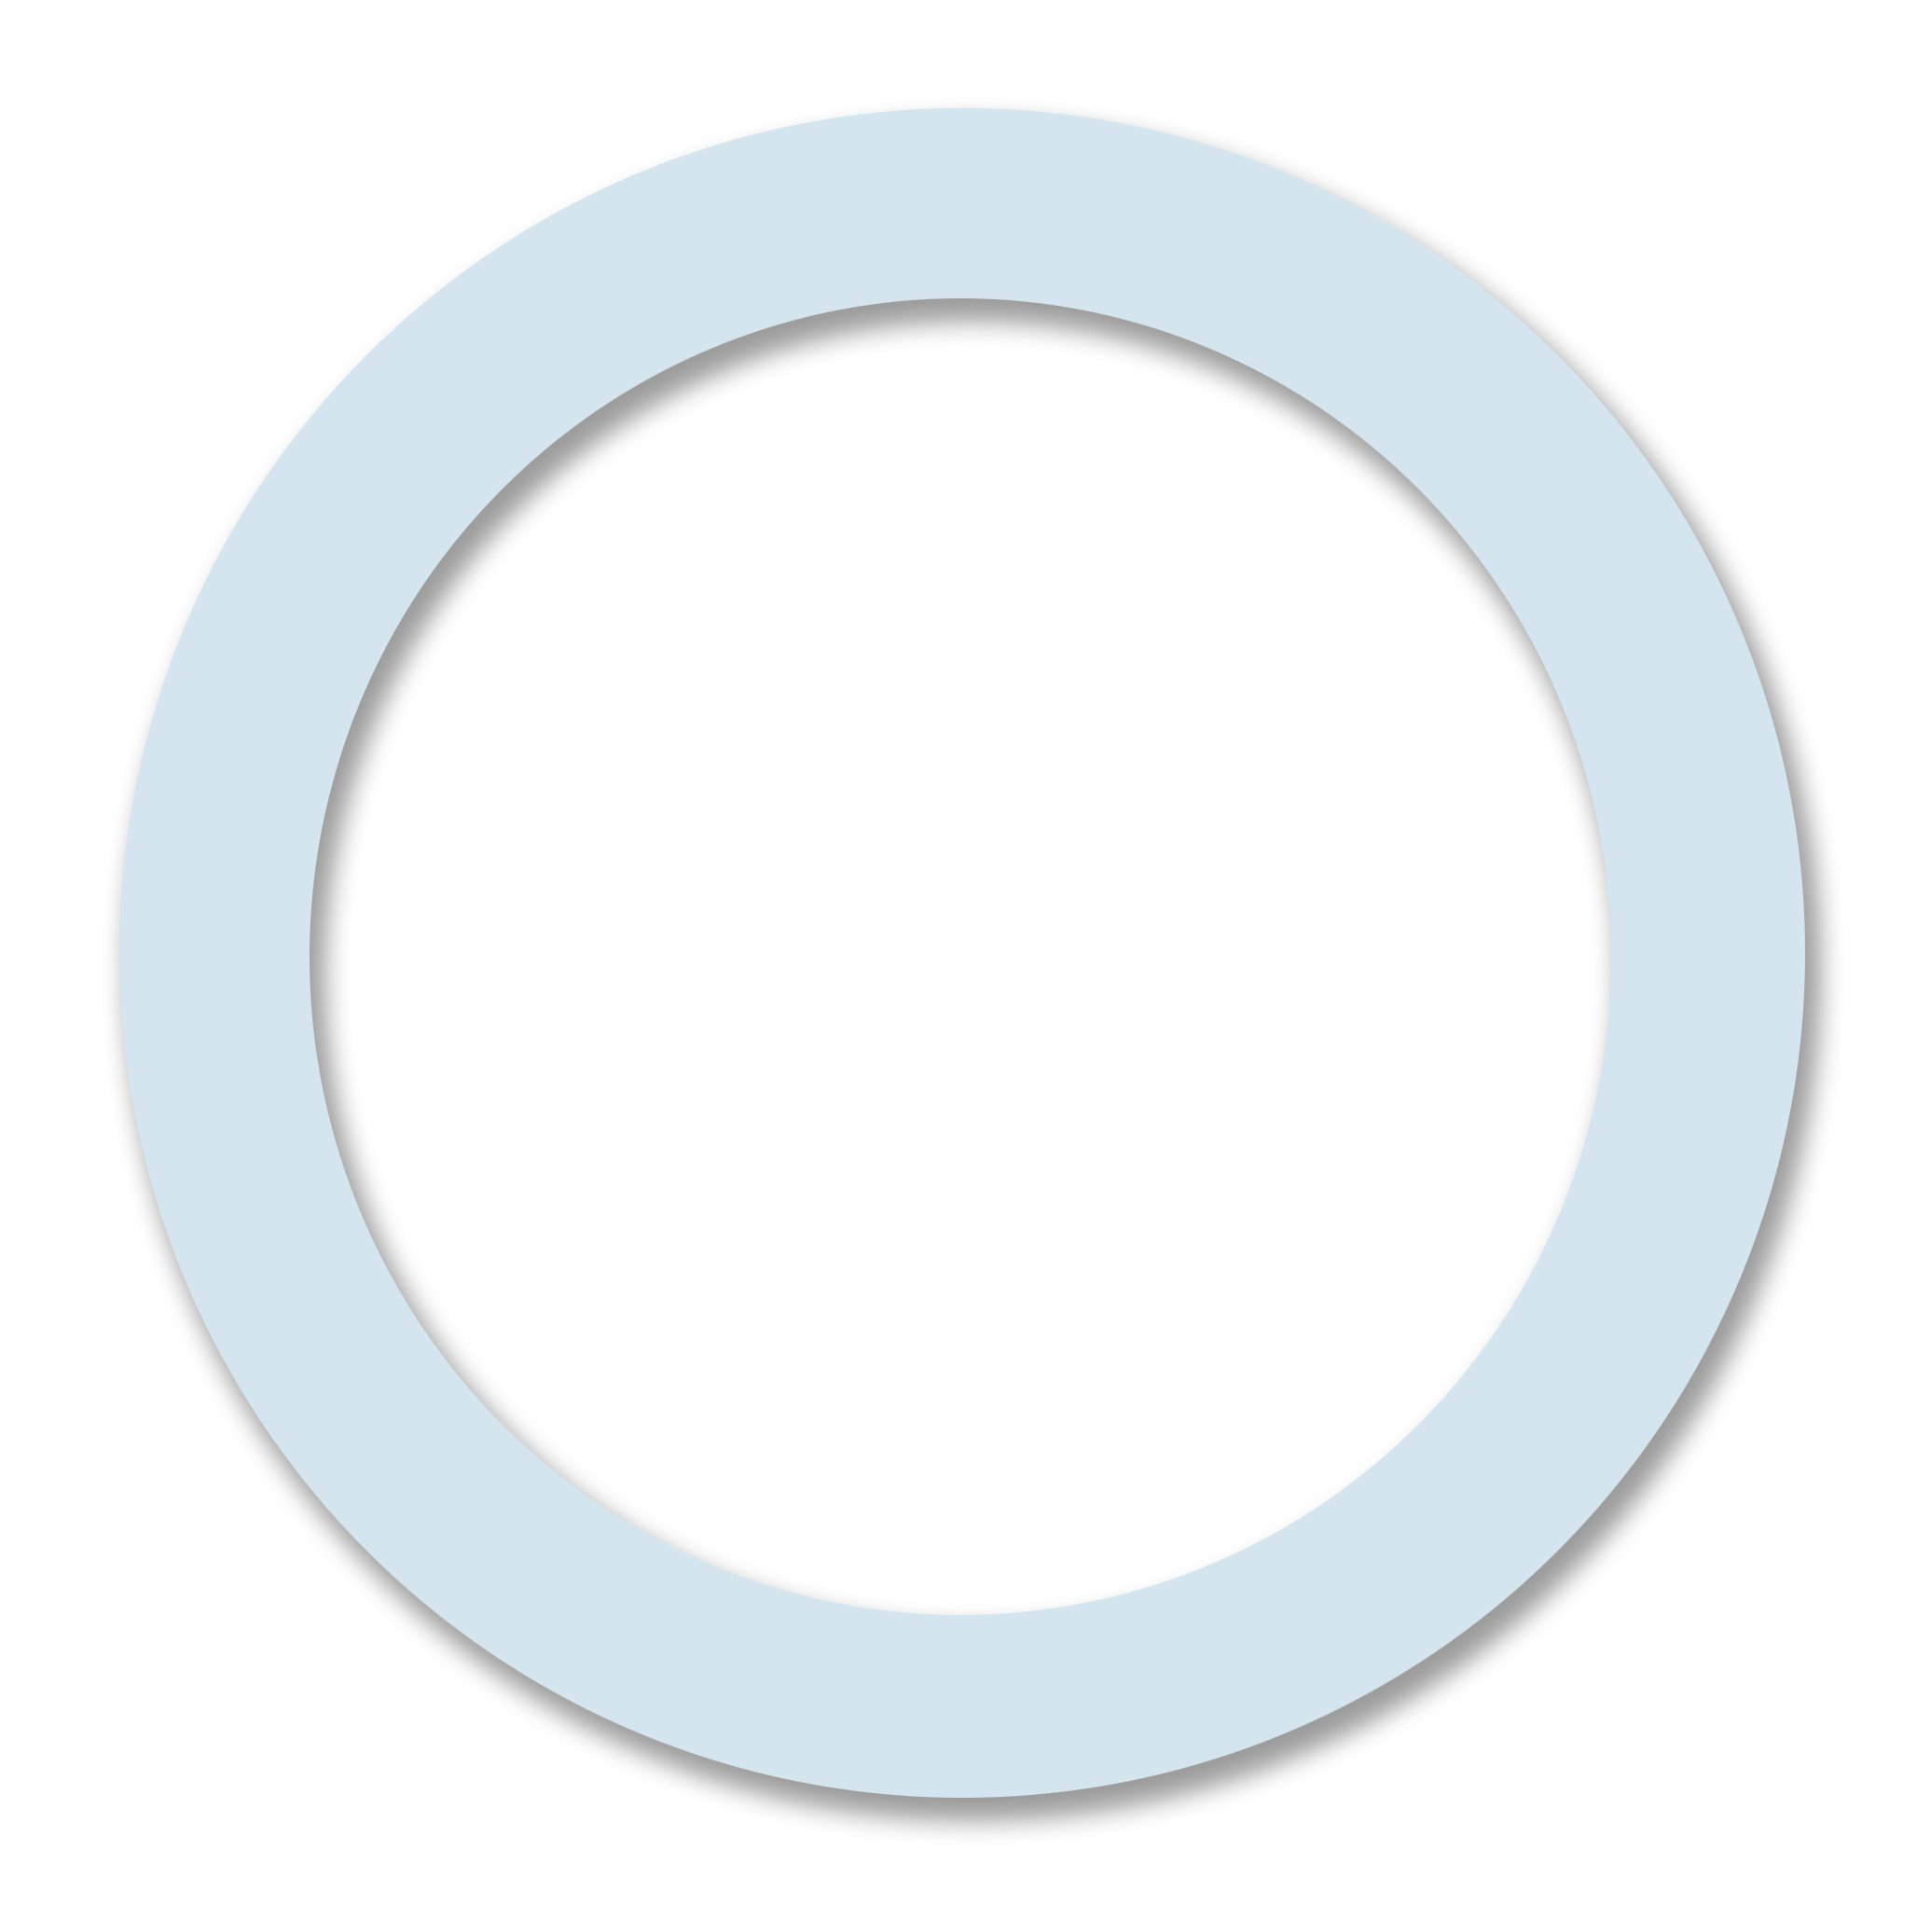 Cuisinox GAS-M6-SILICONE Silicone Gaskets for 6 Cup Espresso Makers, White